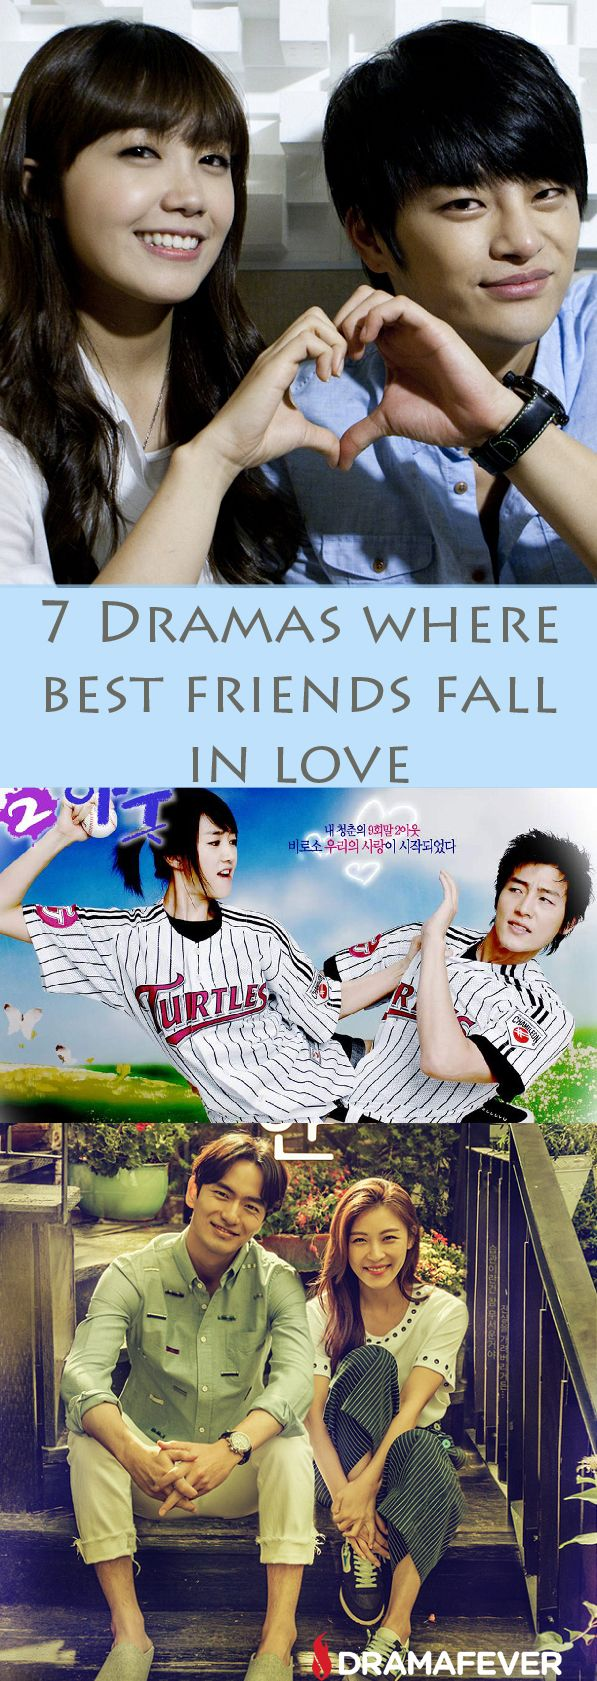 Stories about best friends falling in love can be some of the sweetest romances. Here are 7 Asian dramas about best friends who end up being more than friends.